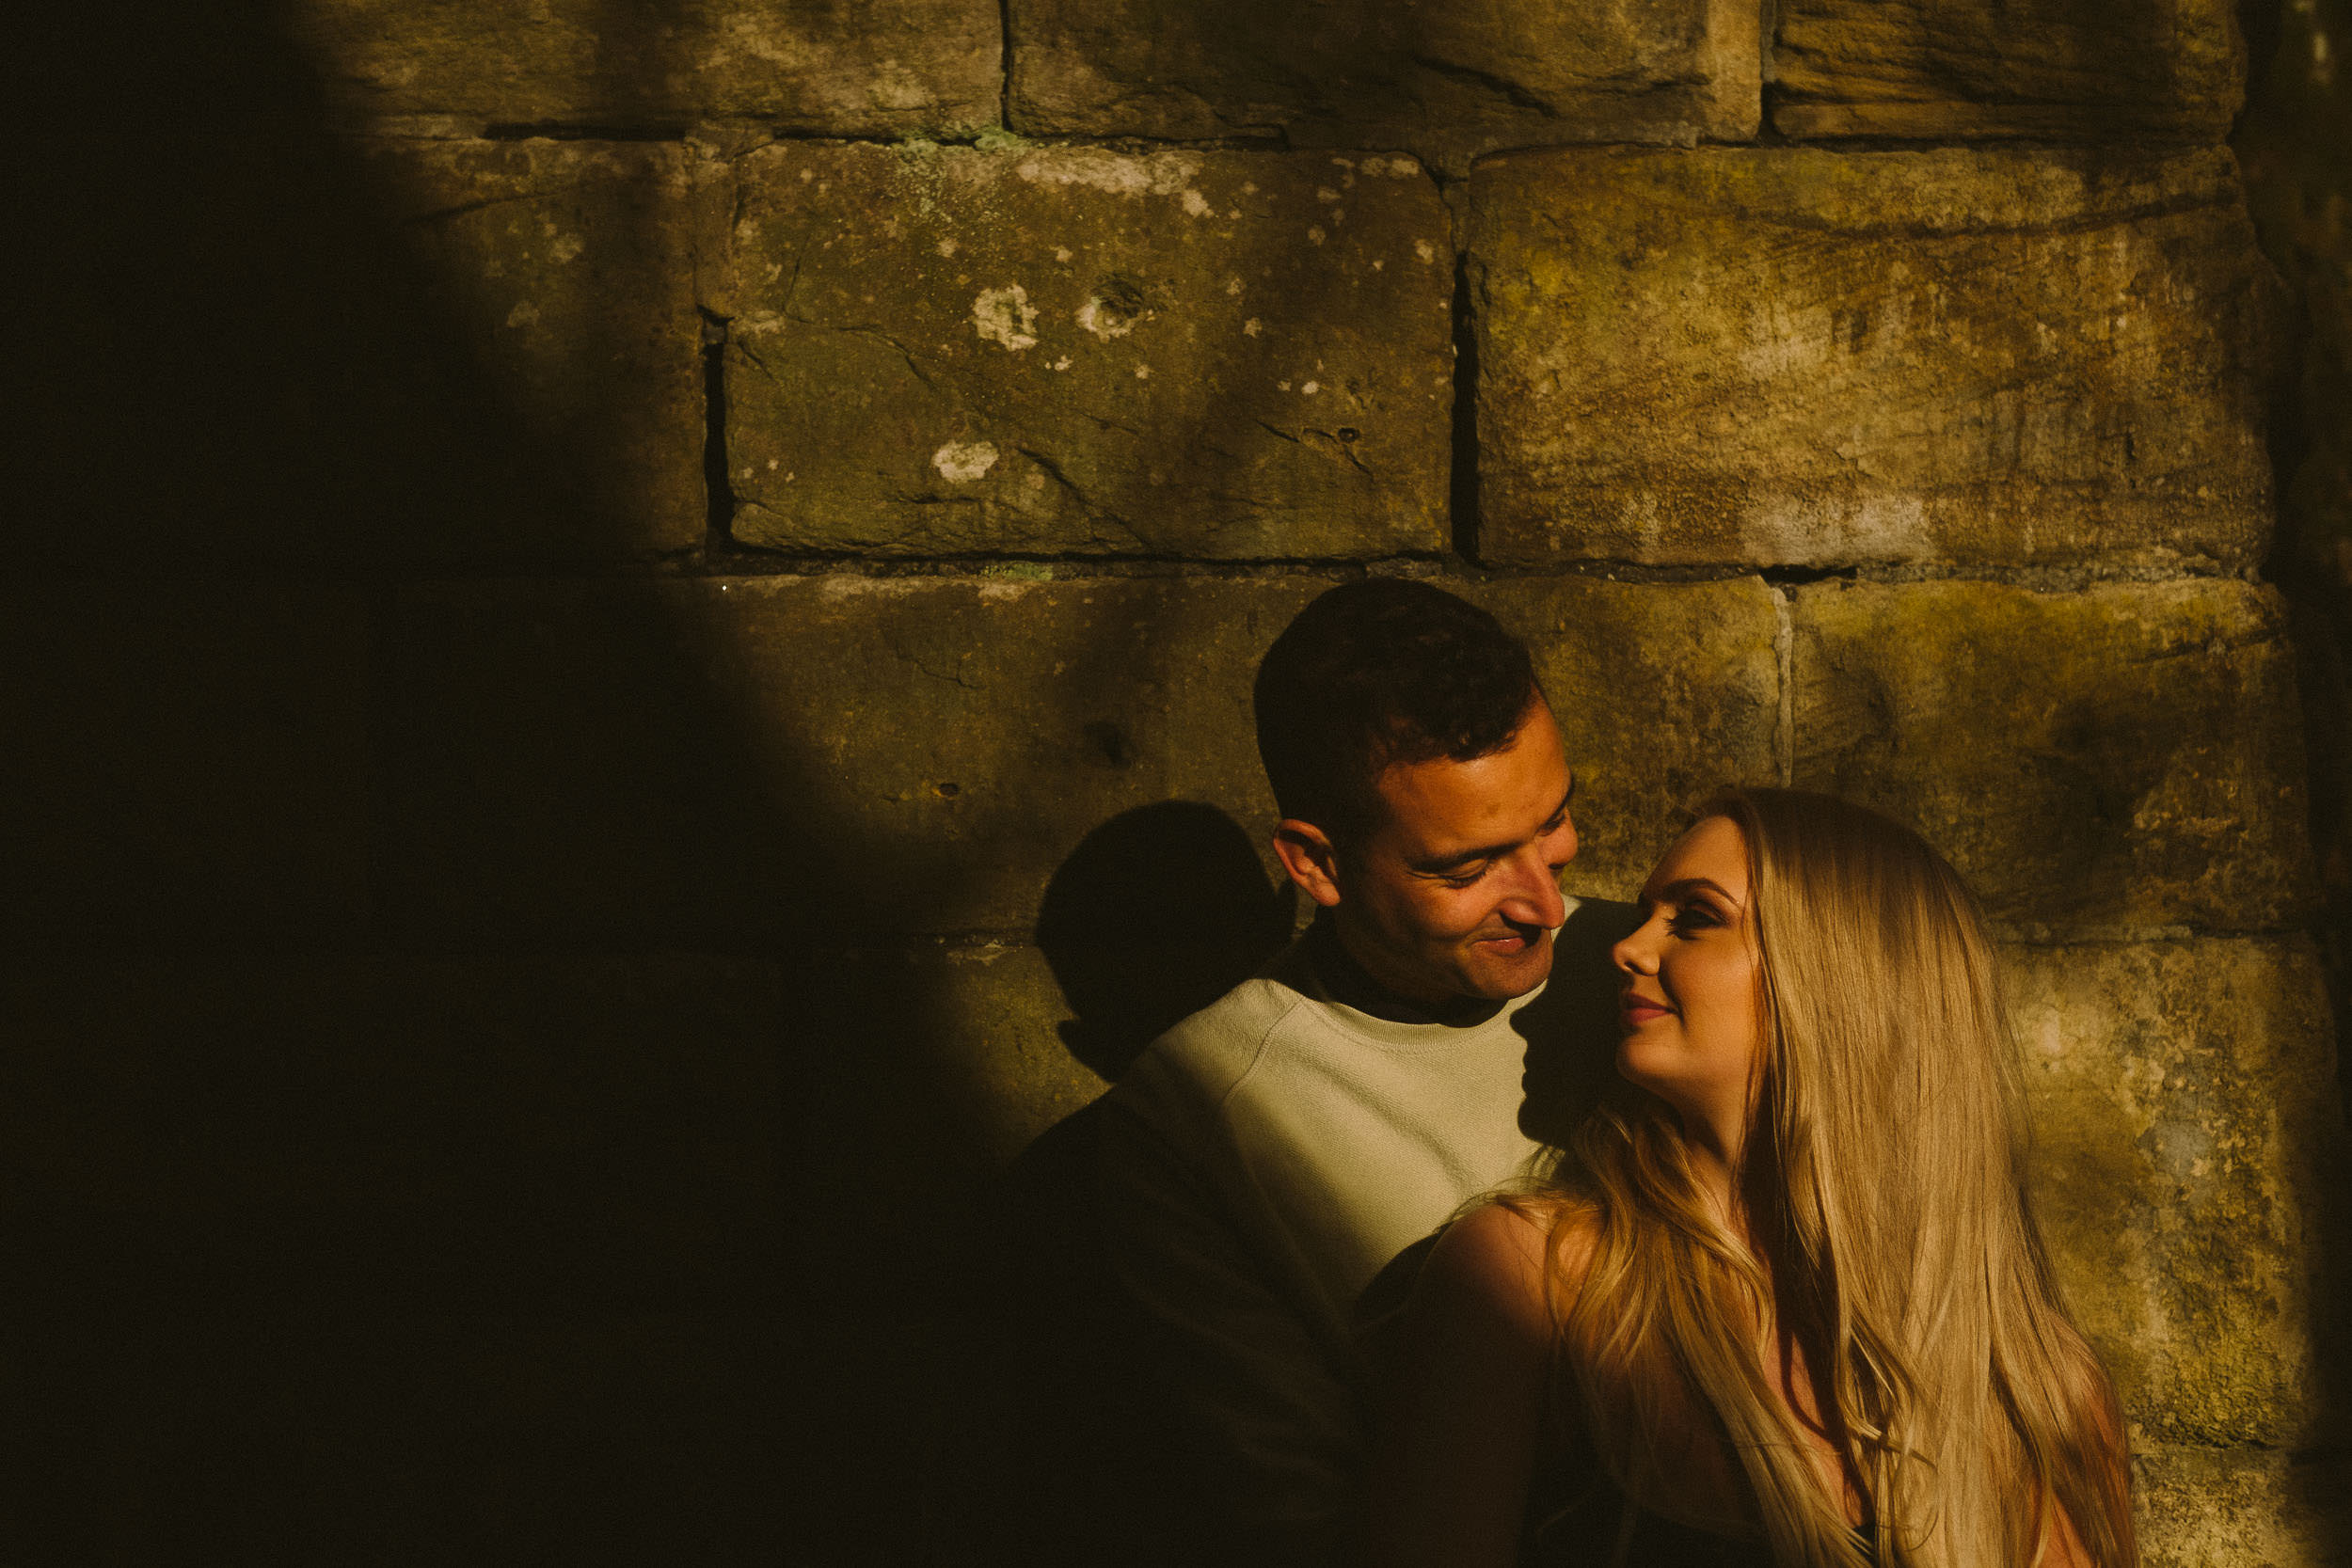 A close up of a couple smiling at each other while leaning against a wall